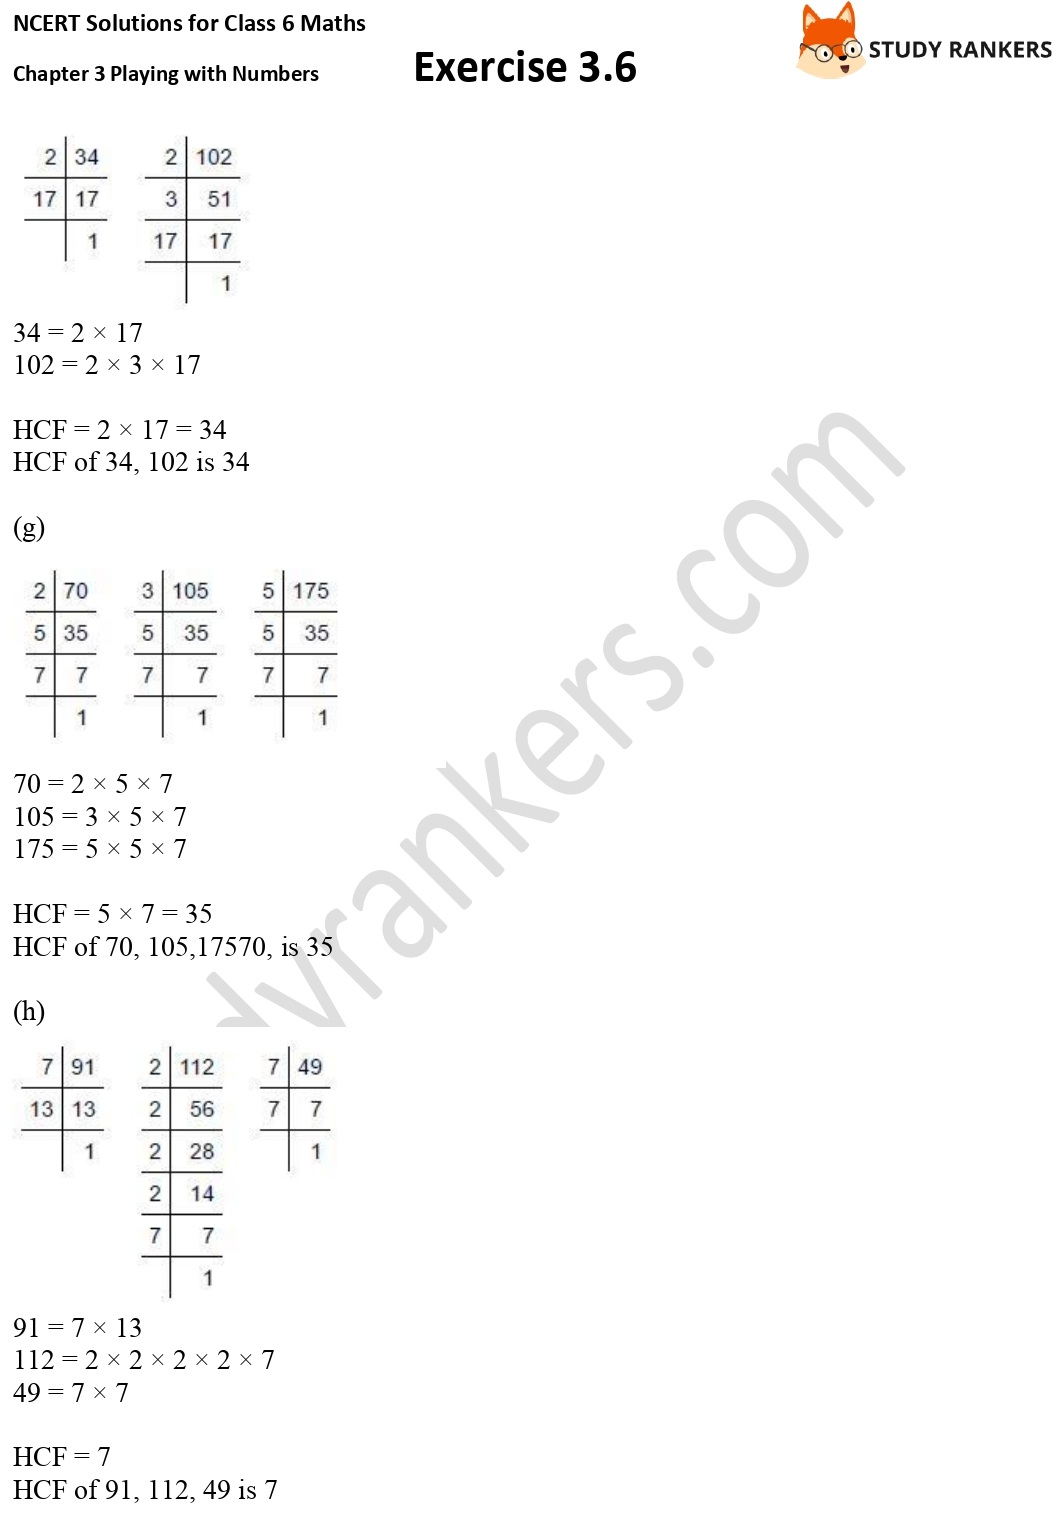 NCERT Solutions for Class 6 Maths Chapter 3 Playing with Numbers Exercise 3.6 Part 3